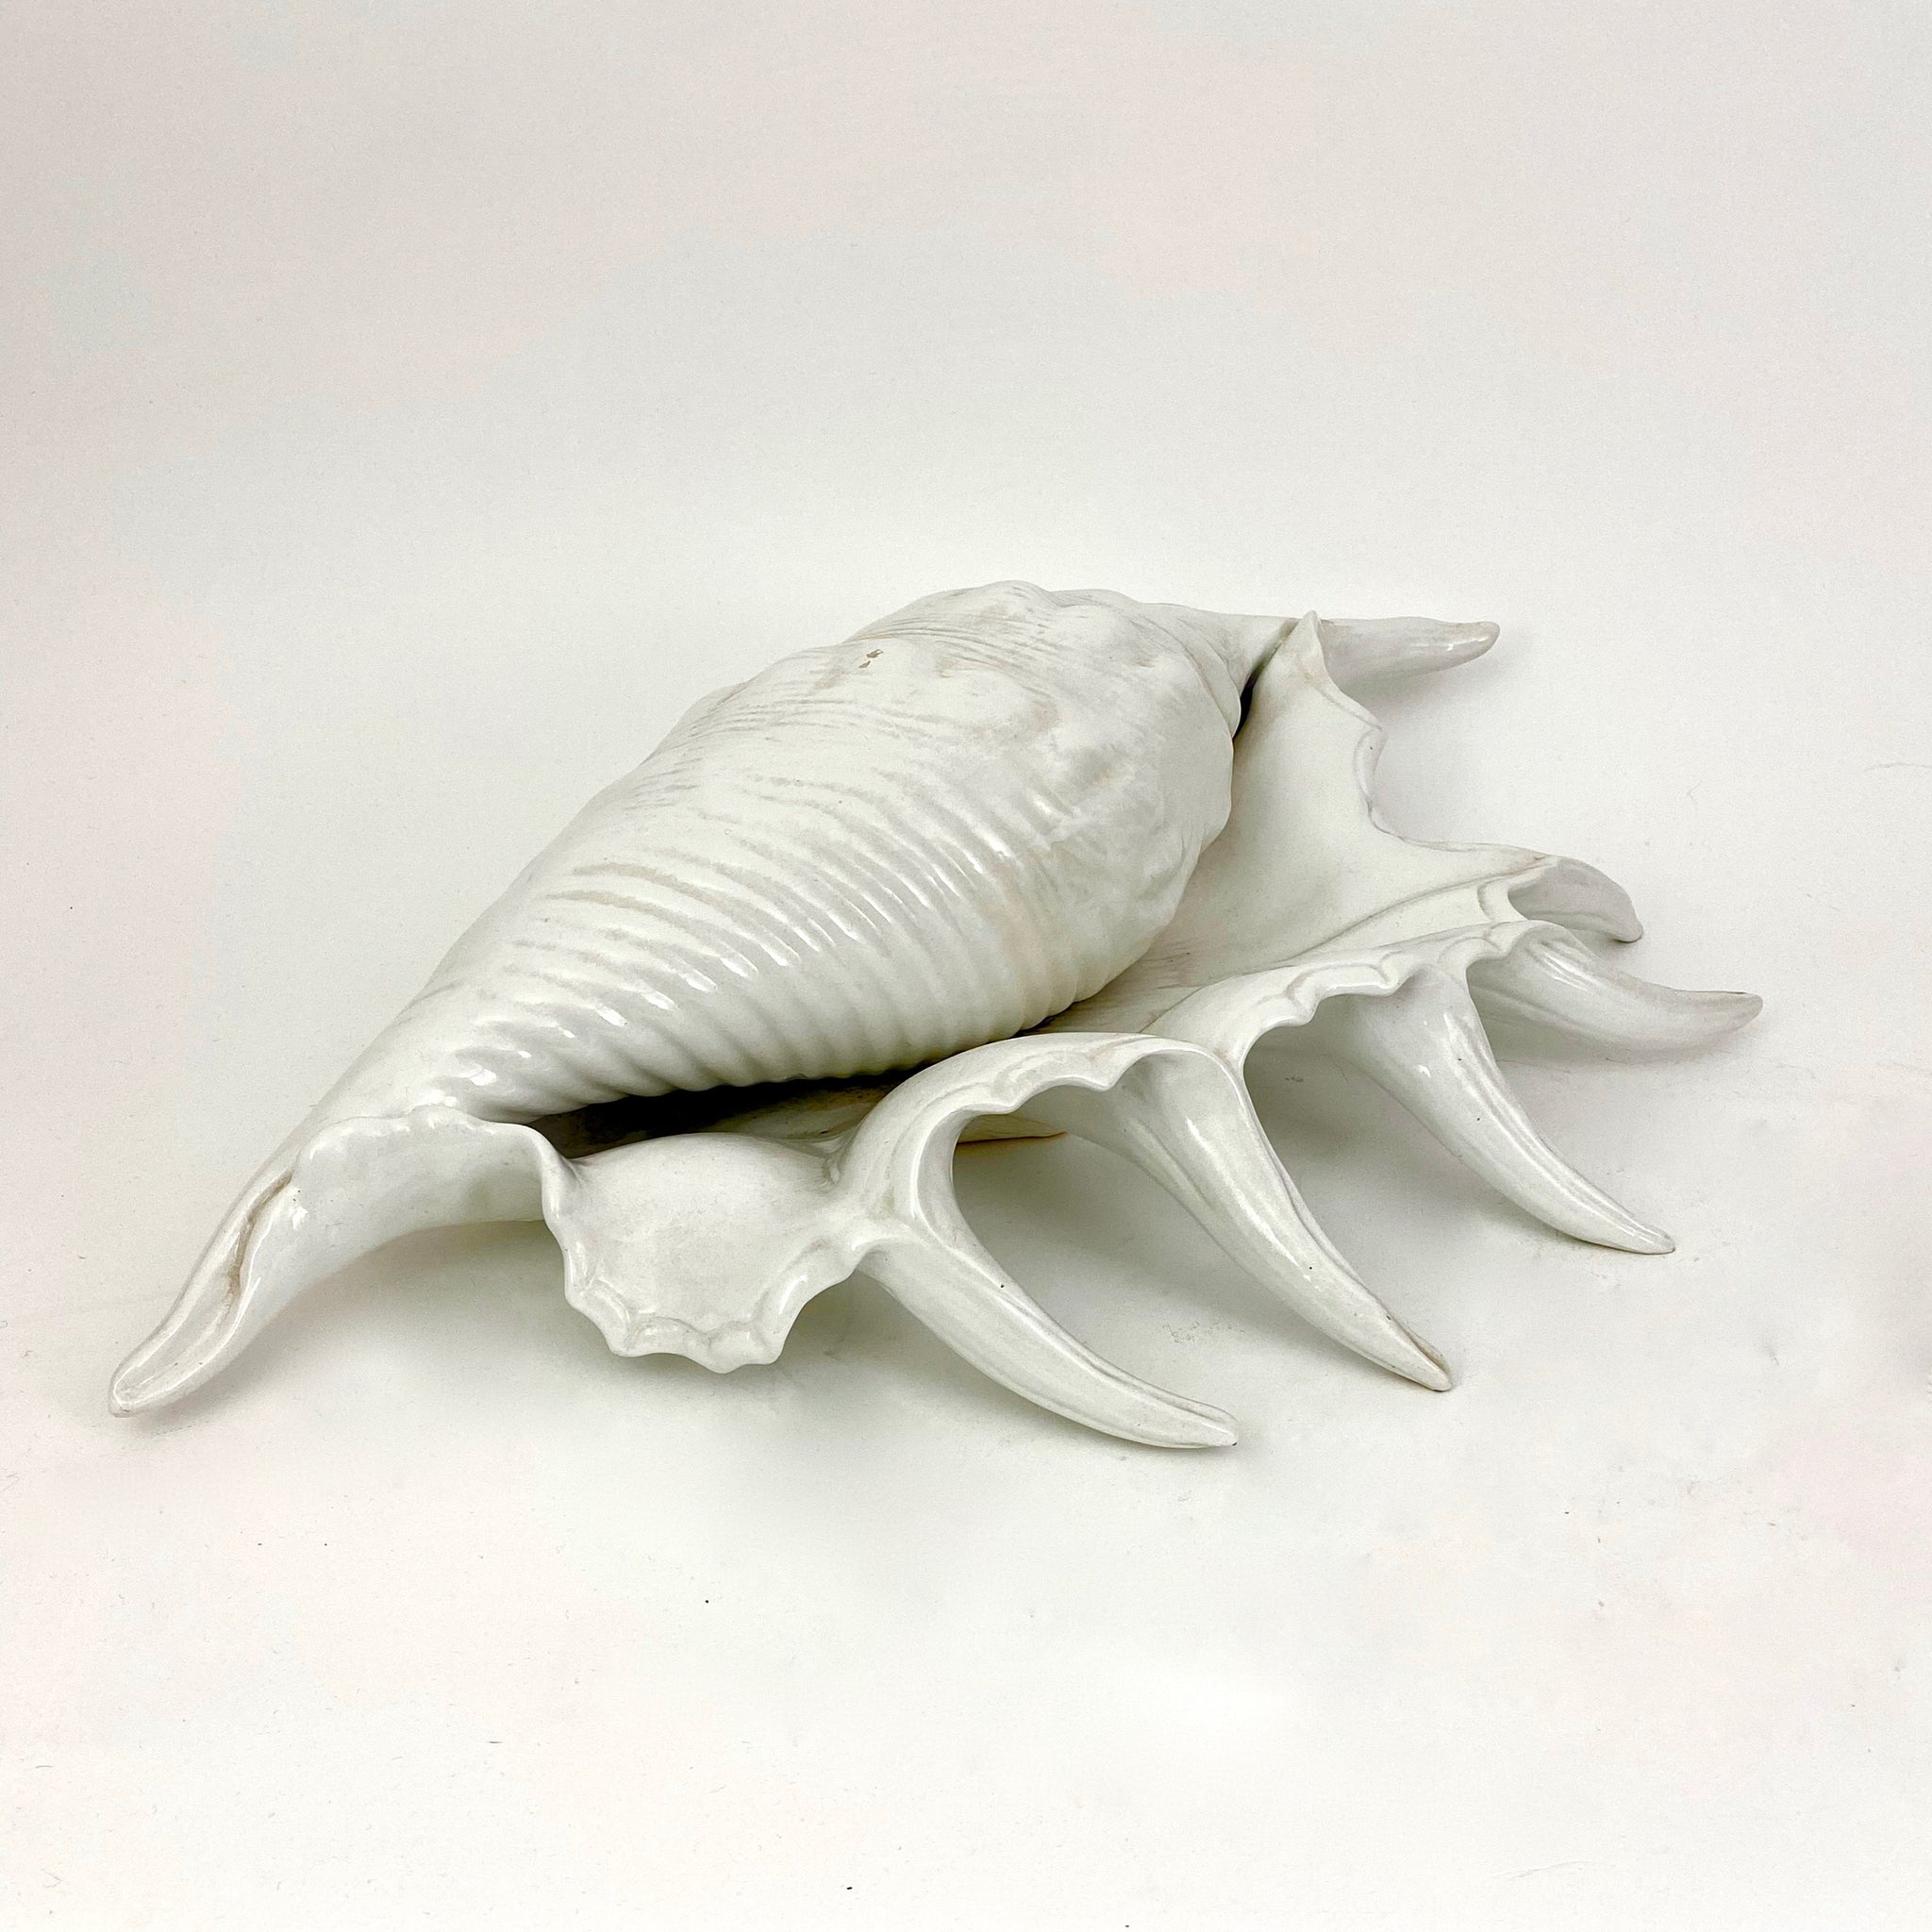 Large vintage Italian ceramic seashell sculpture .